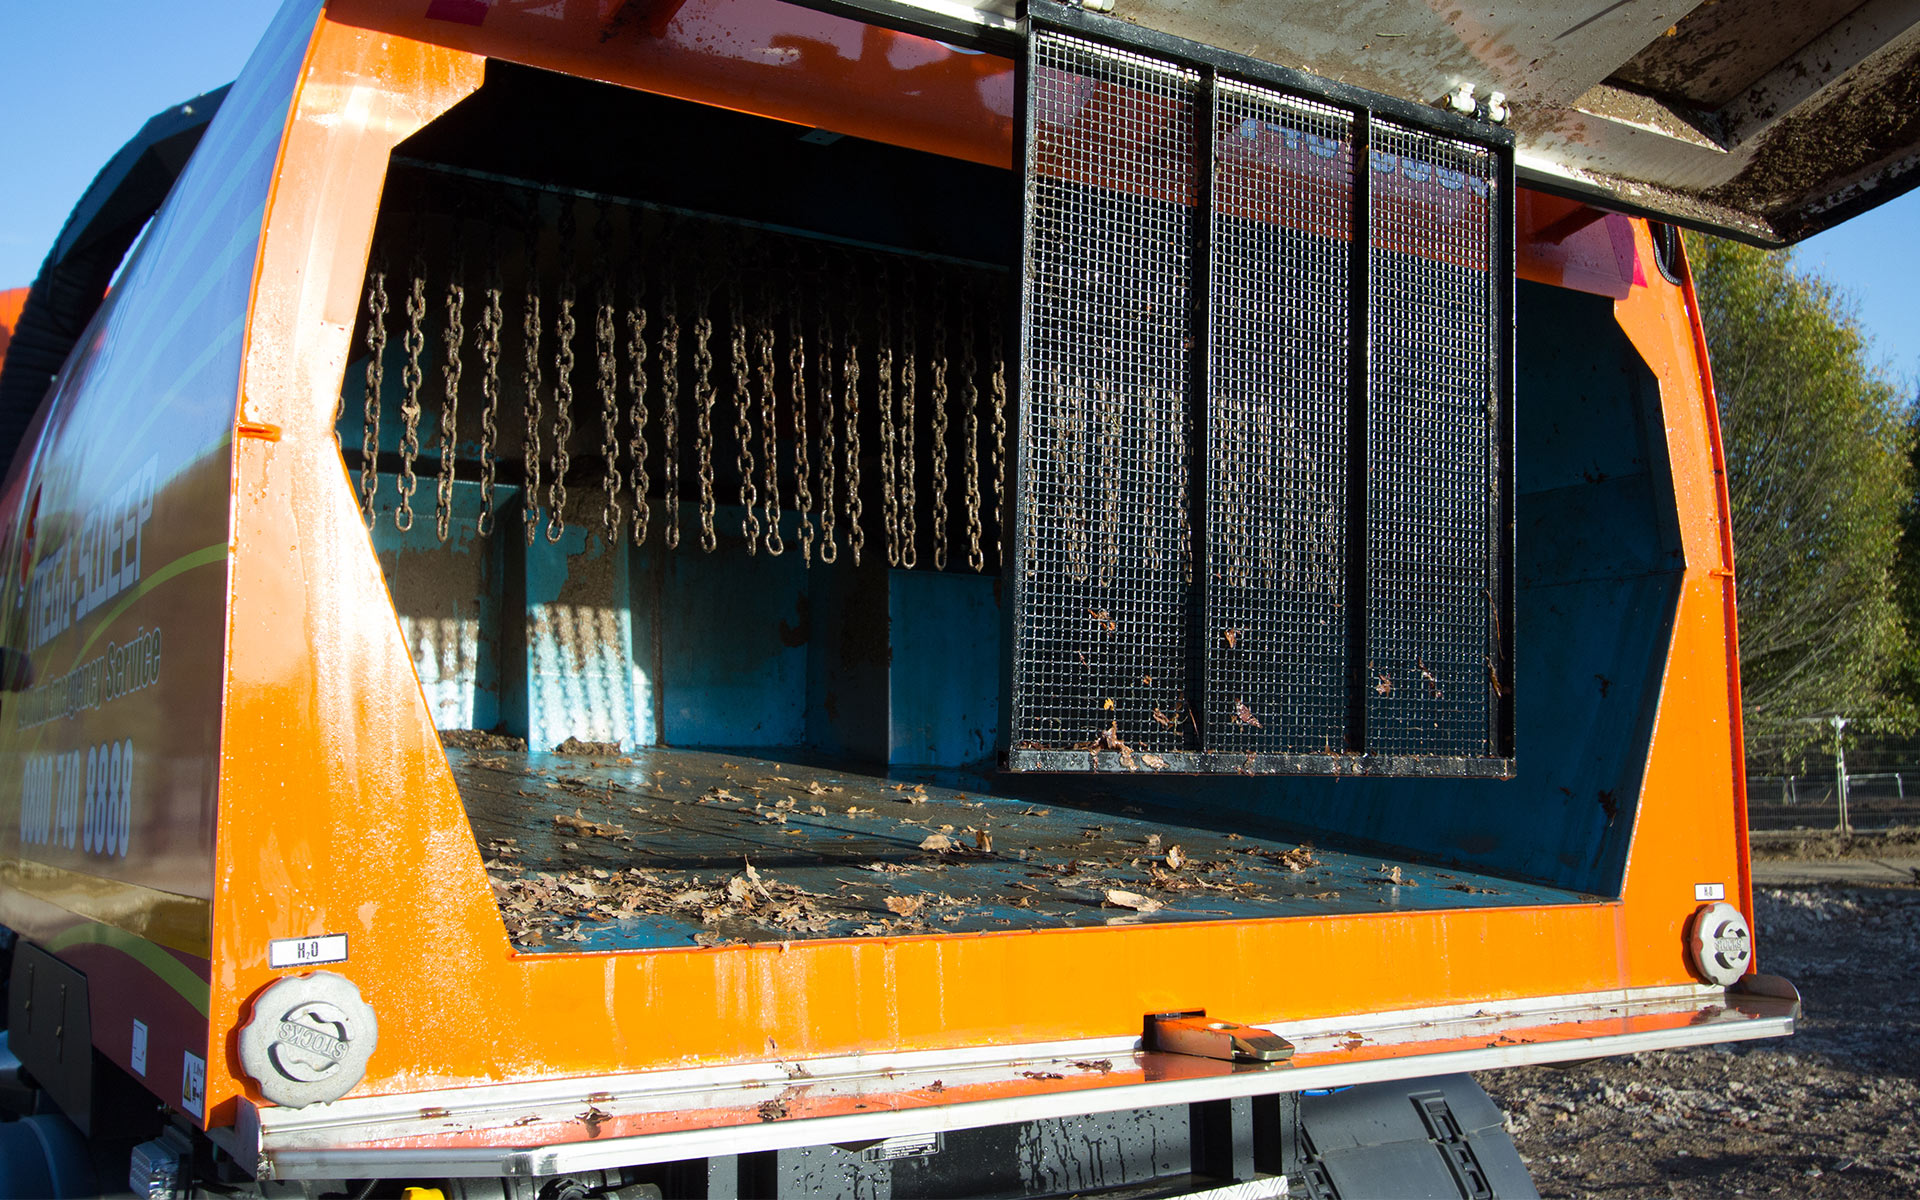 Mega-Sweep hopper capable of compacting and collecting large volumns of waste